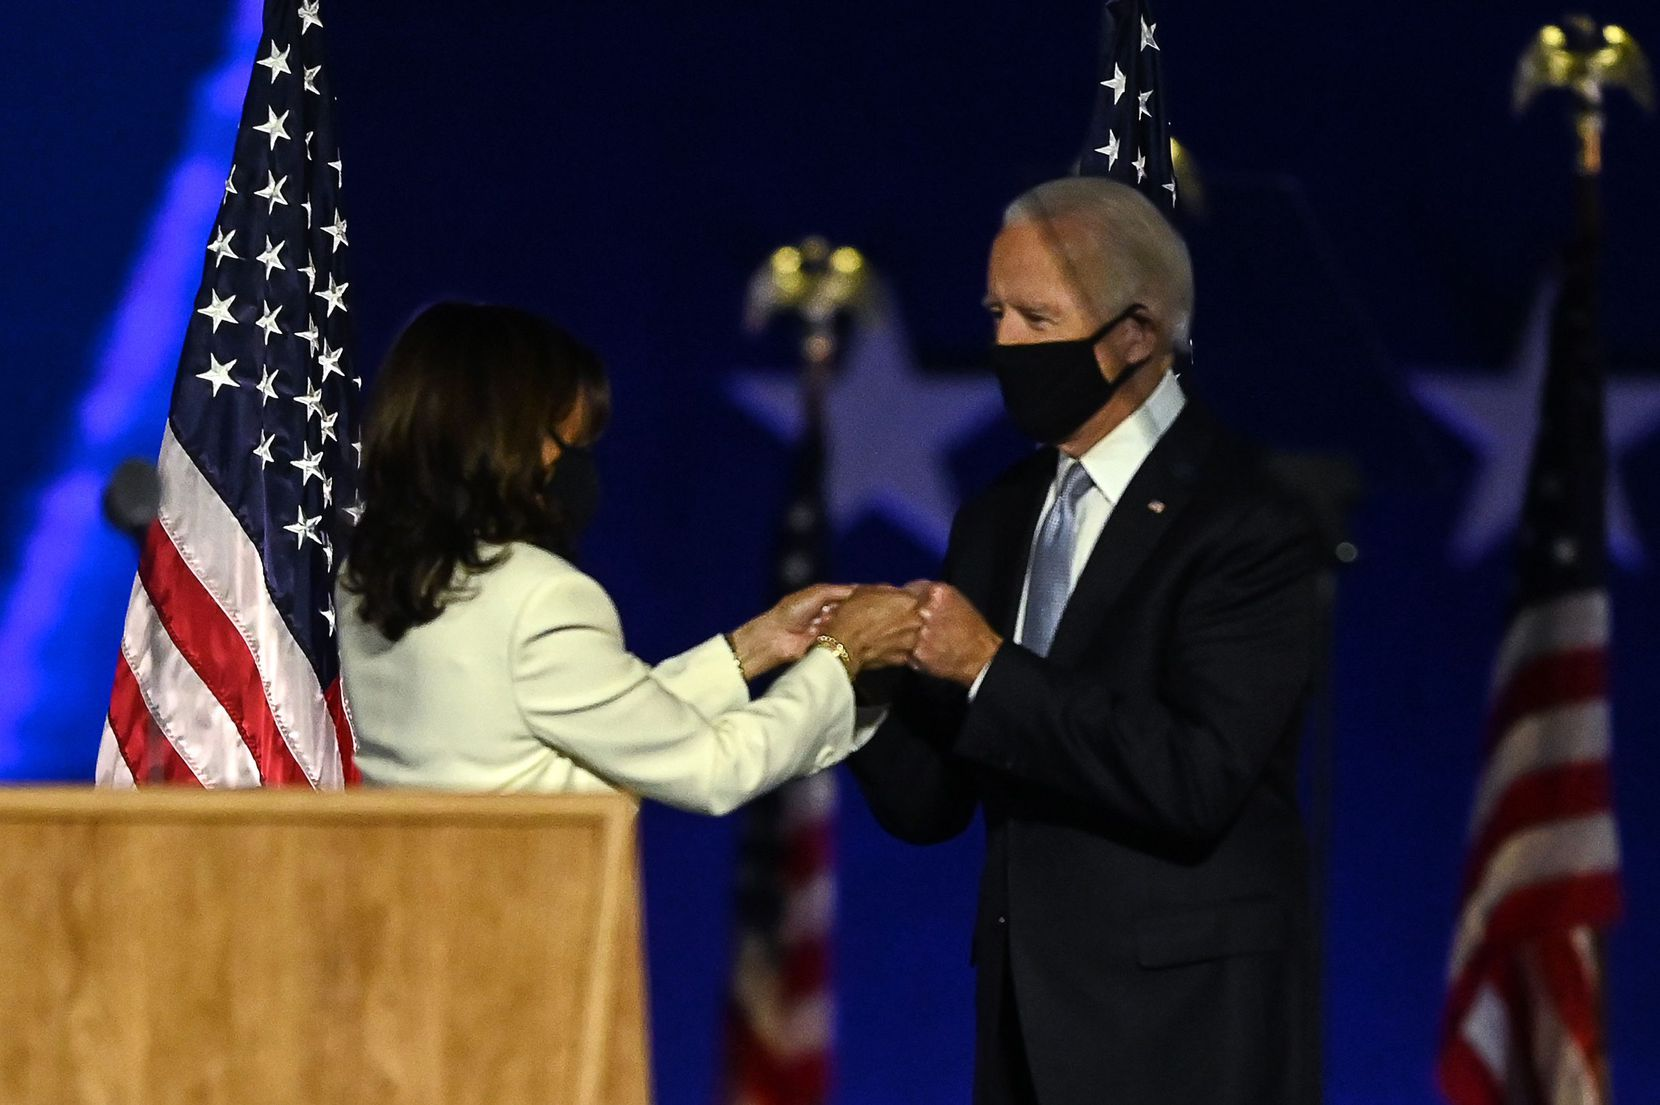 US President-elect Joe Biden and Vice President-elect Kamala Harris bump fists as they arrive to deliver remarks in Wilmington, Delaware, on November 7, 2020, after being declared the winners of the presidential election. (Photo by Jim WATSON / AFP) (Photo by JIM WATSON/AFP via Getty Images)